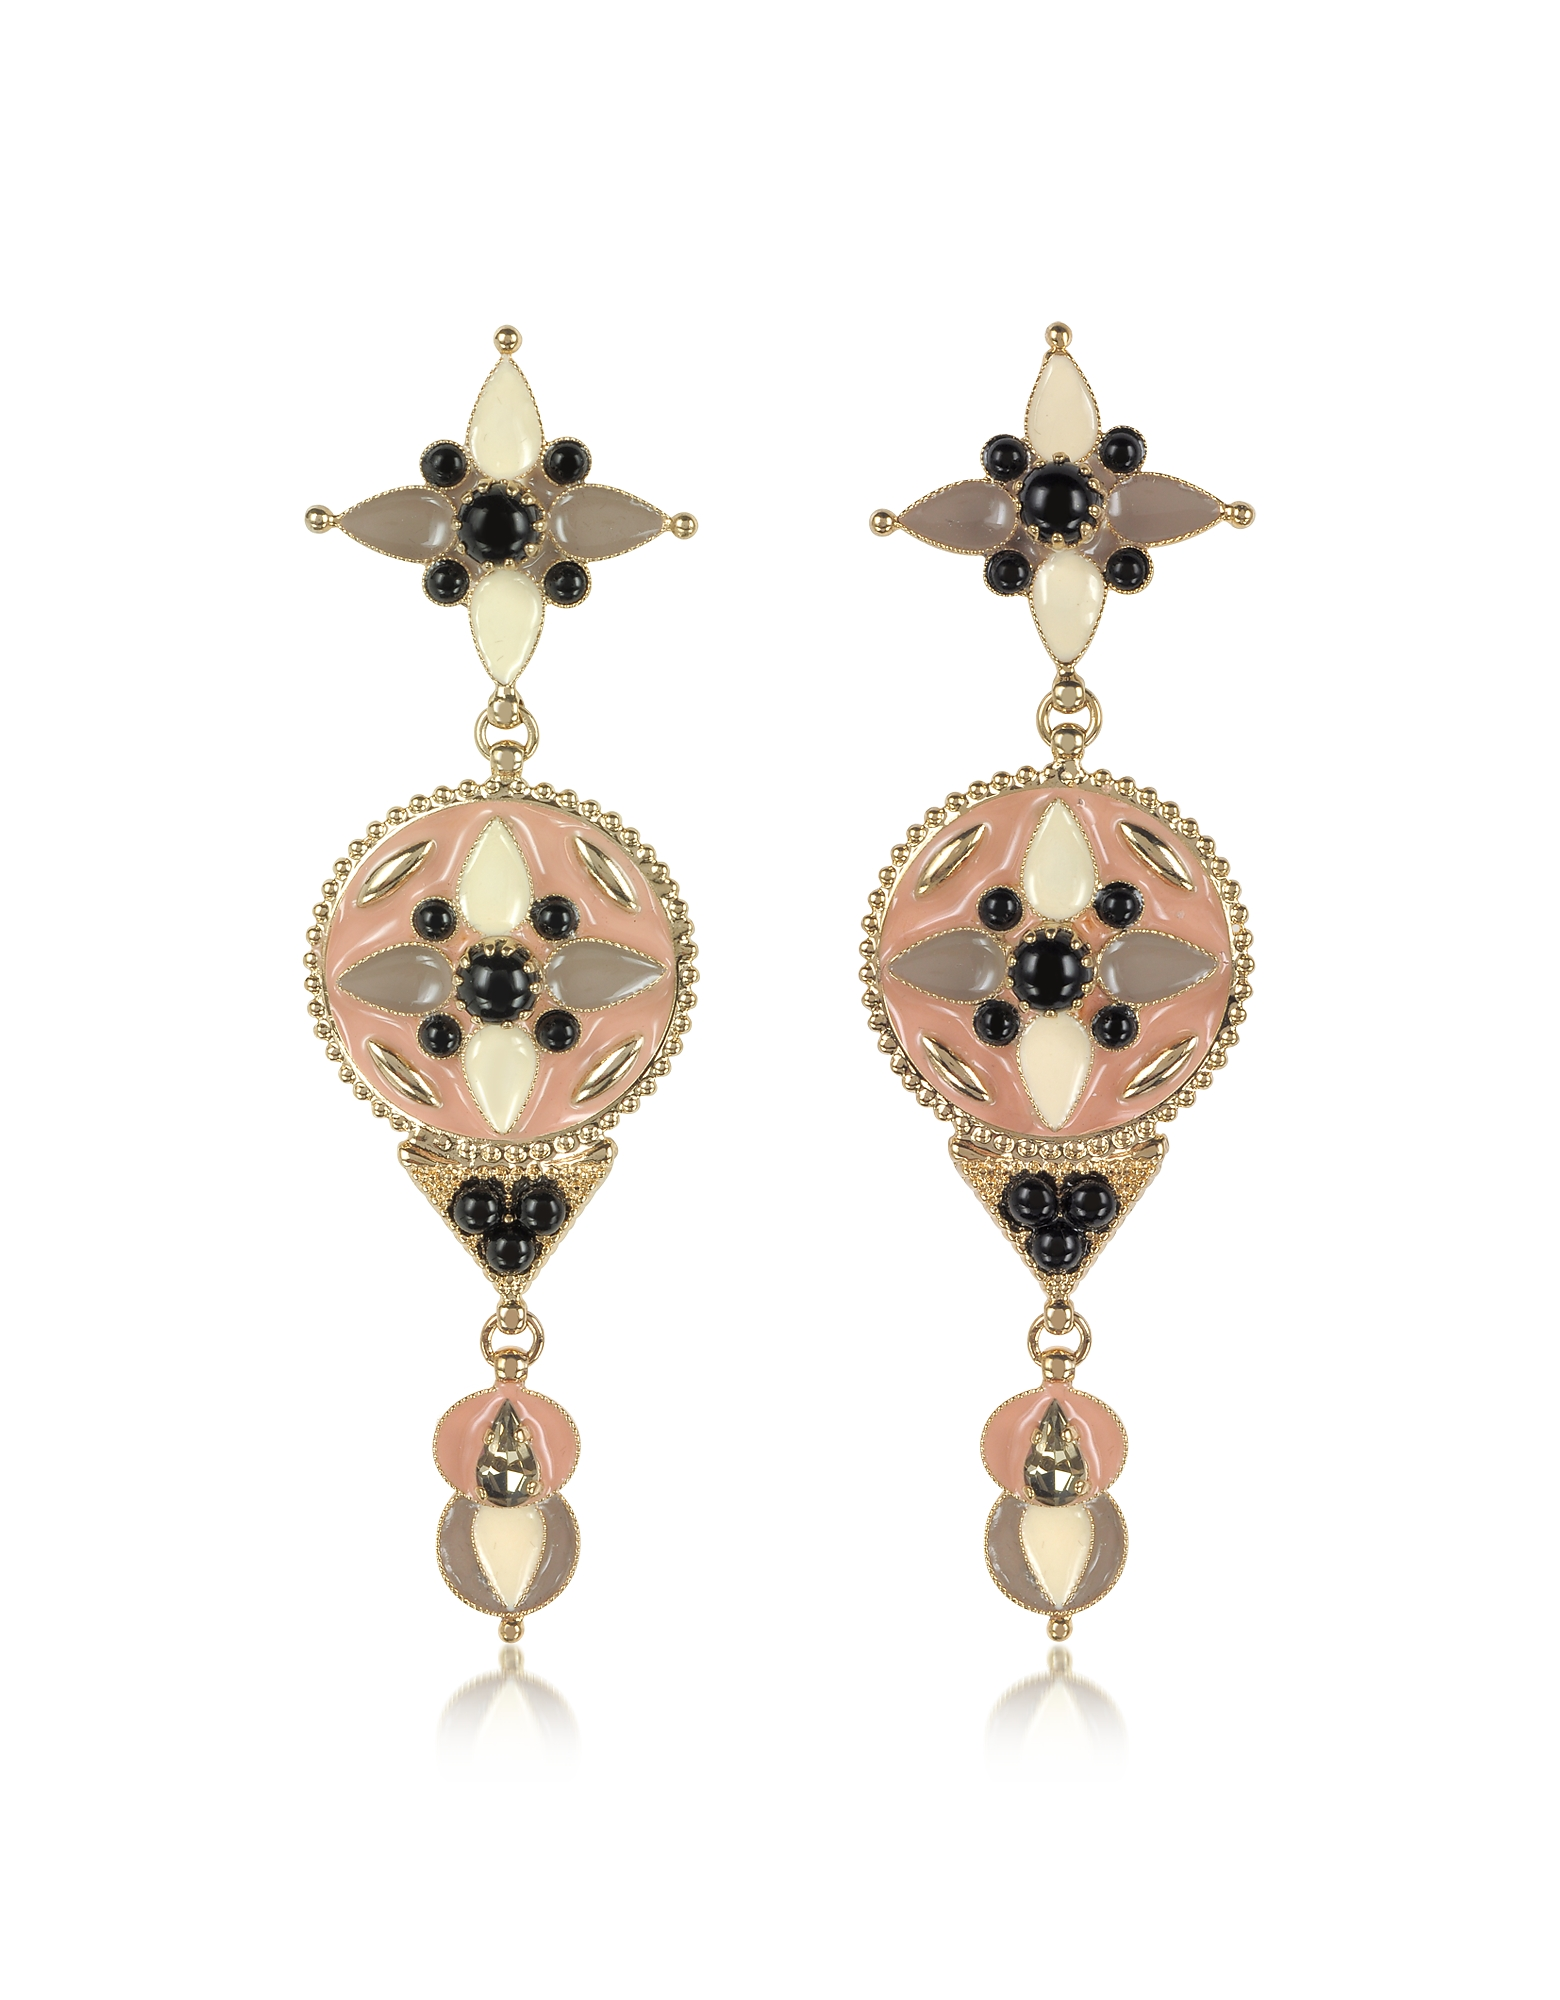 Roberto Cavalli Earrings, Gold-tone and Enamel w/Multicolor Crystals Long Earrings